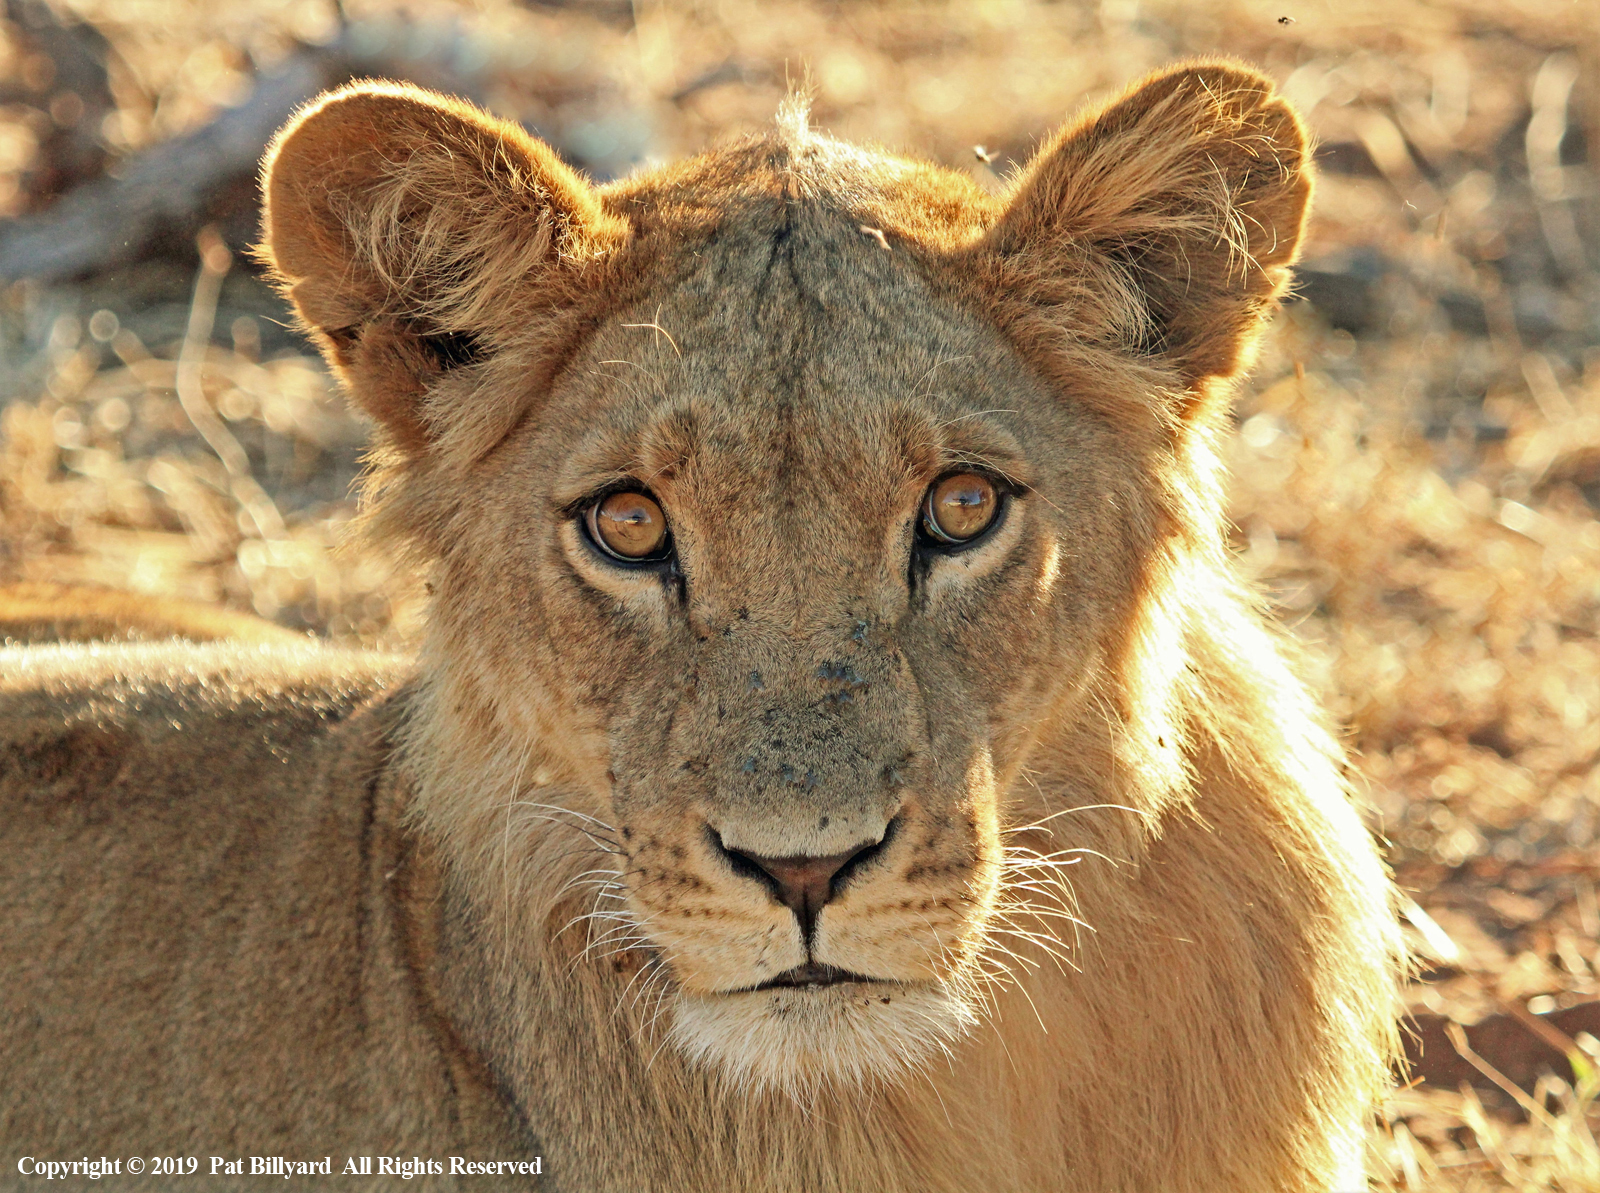 African lion by Pat Billyard